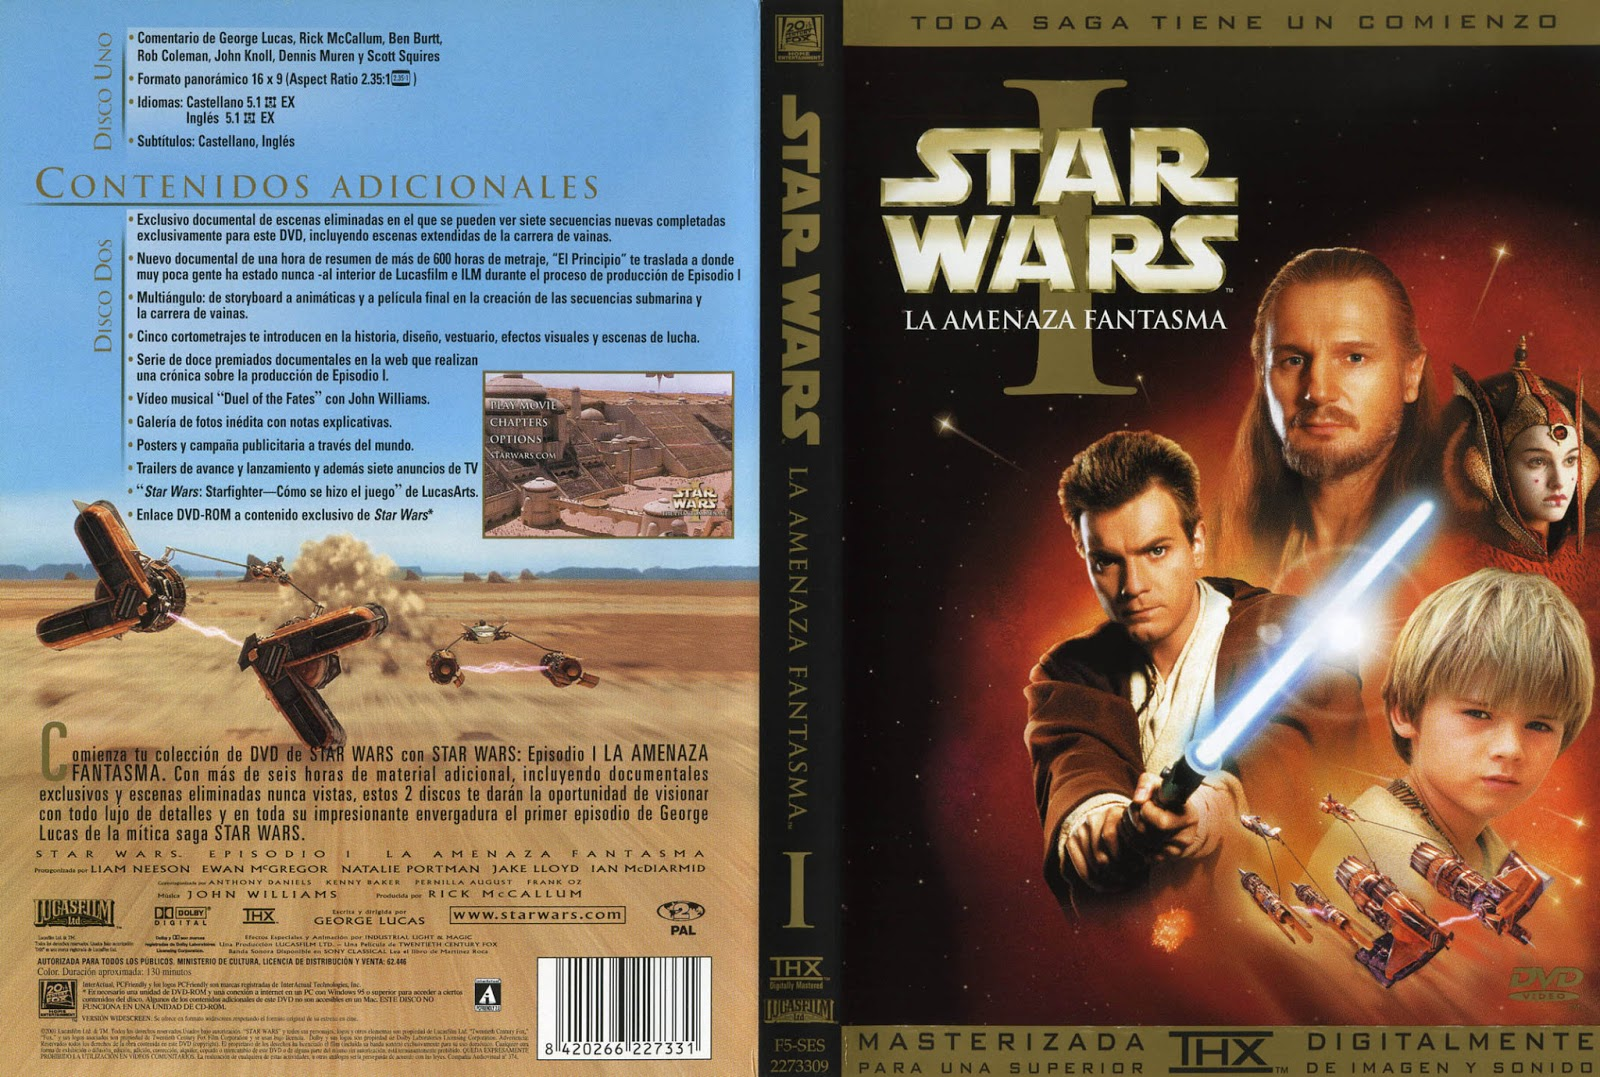 Star Wars I - La Amenaza Fantasma DVD